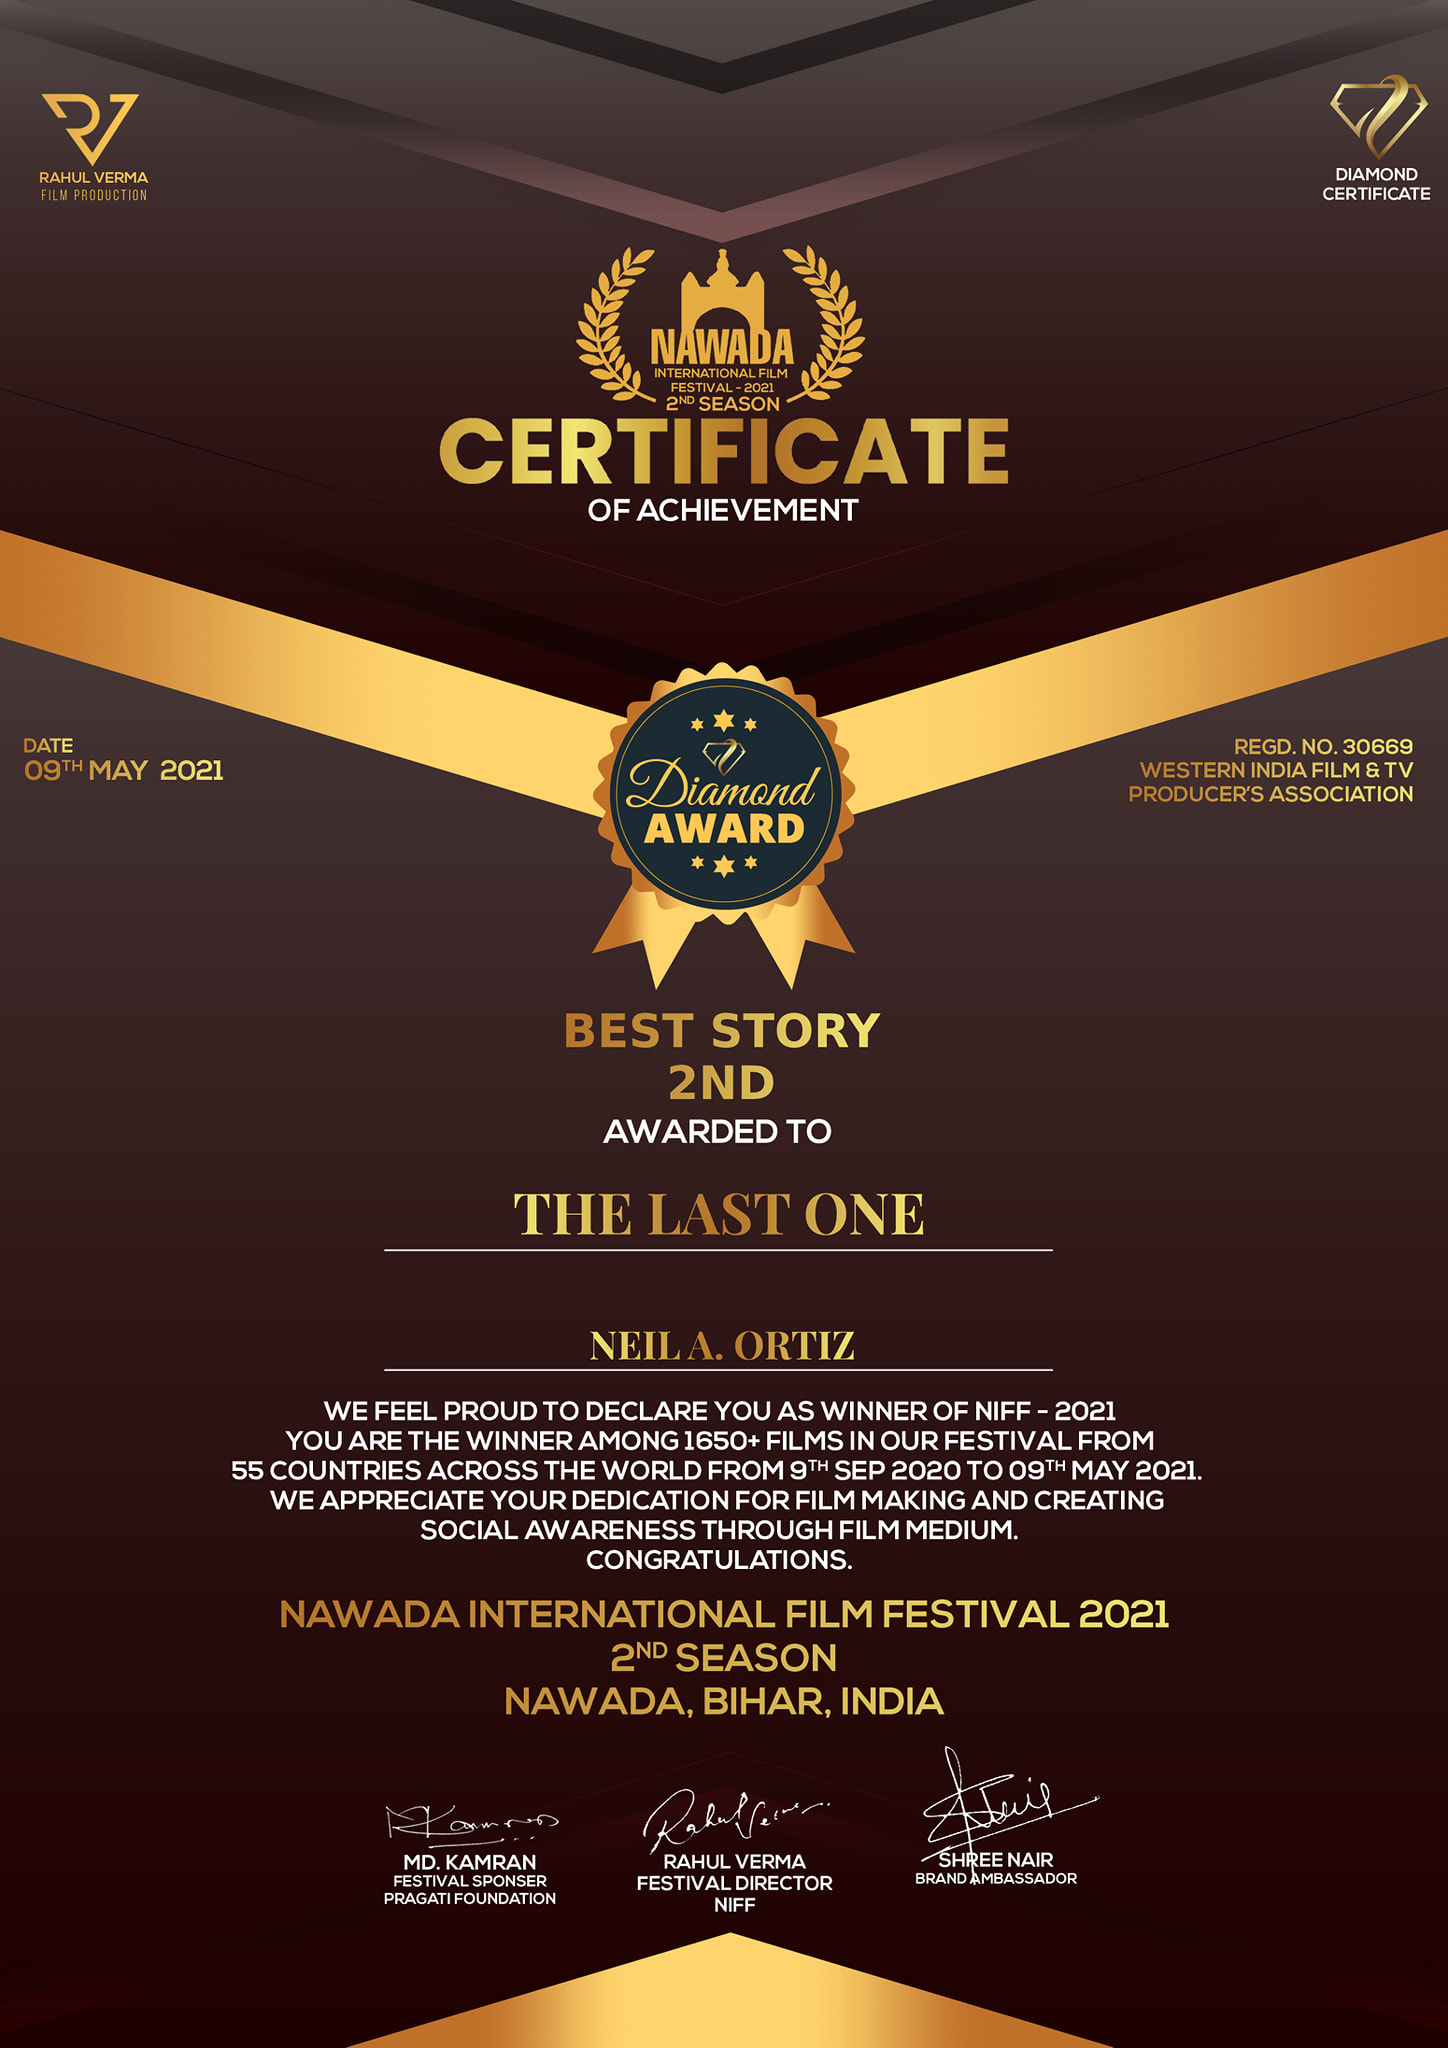 CERTIFICATE OF ACHIEVEMENT - BEST STORY 2ND PLACE